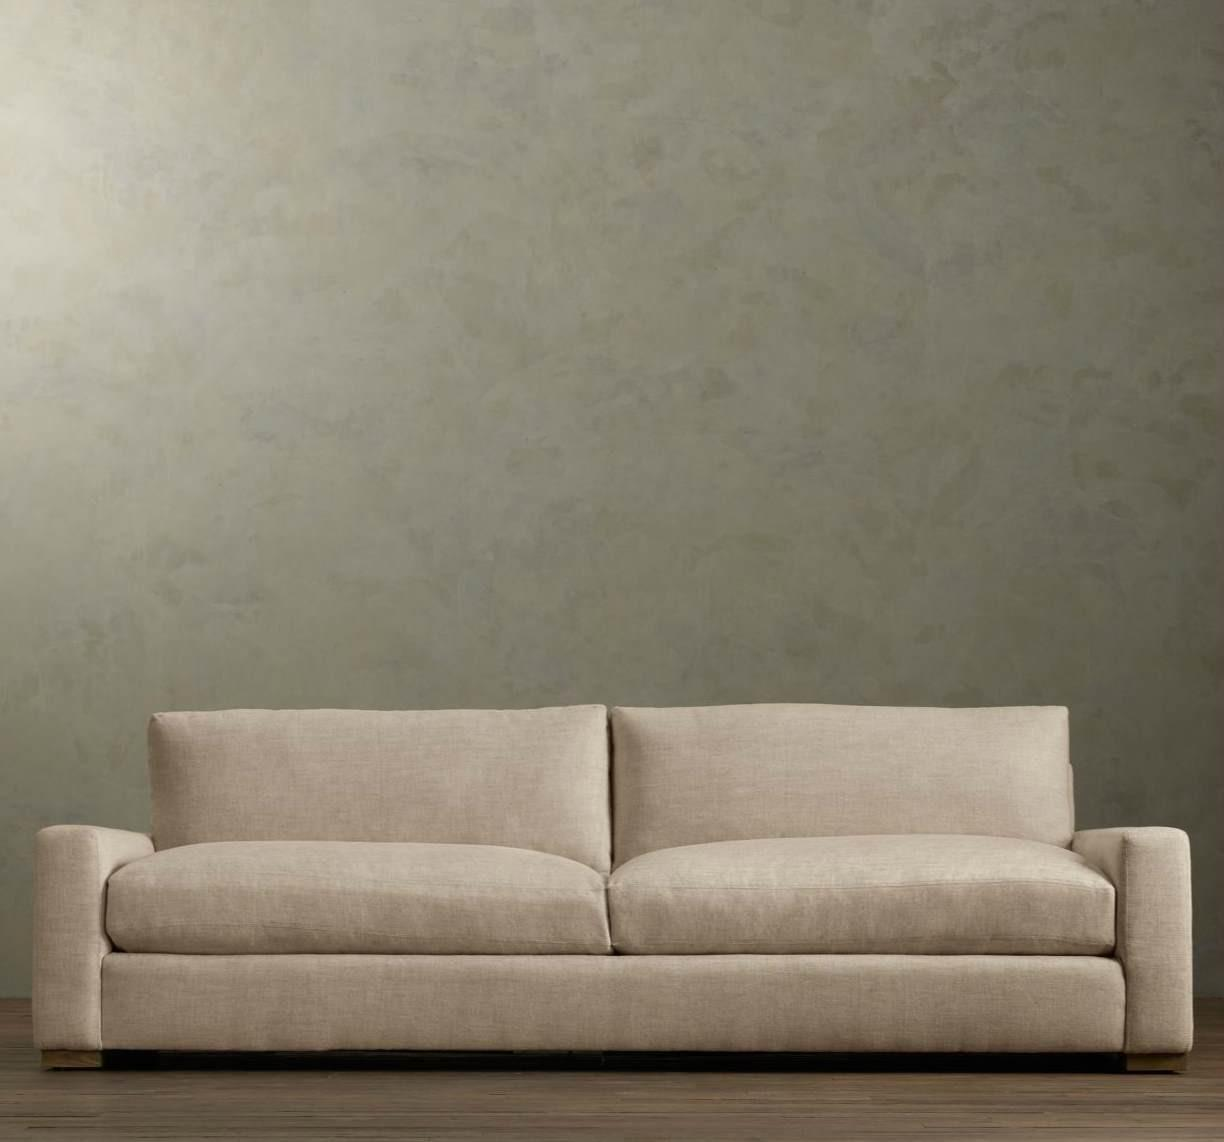 Sofa Couch Great Seating Debate